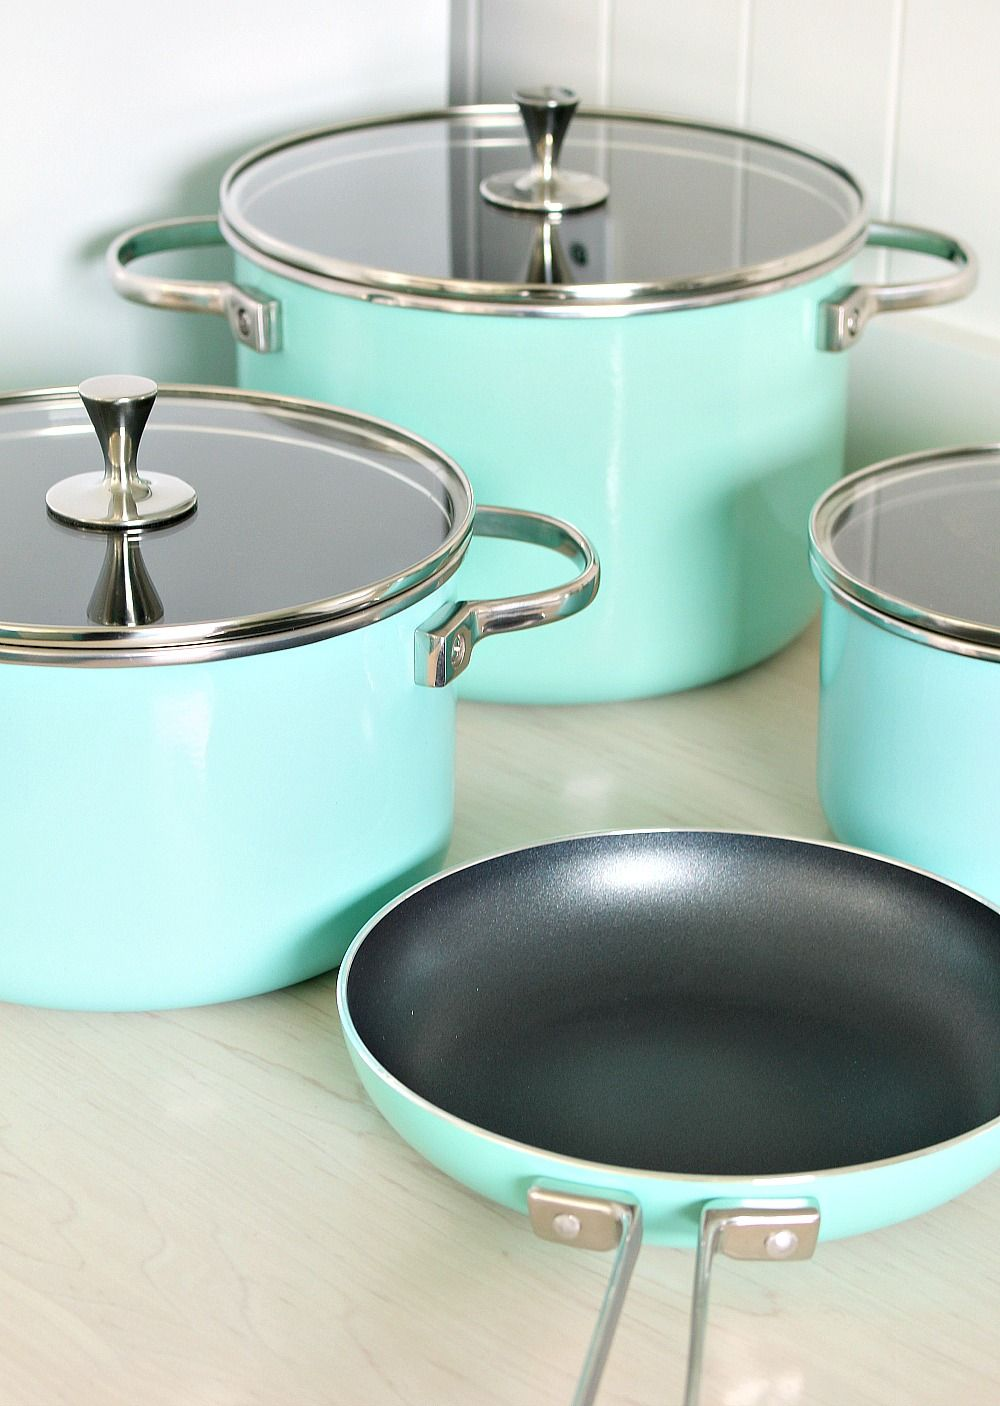 Turquoise Cambria Utensil Crock | I Want That! | Pinterest ...